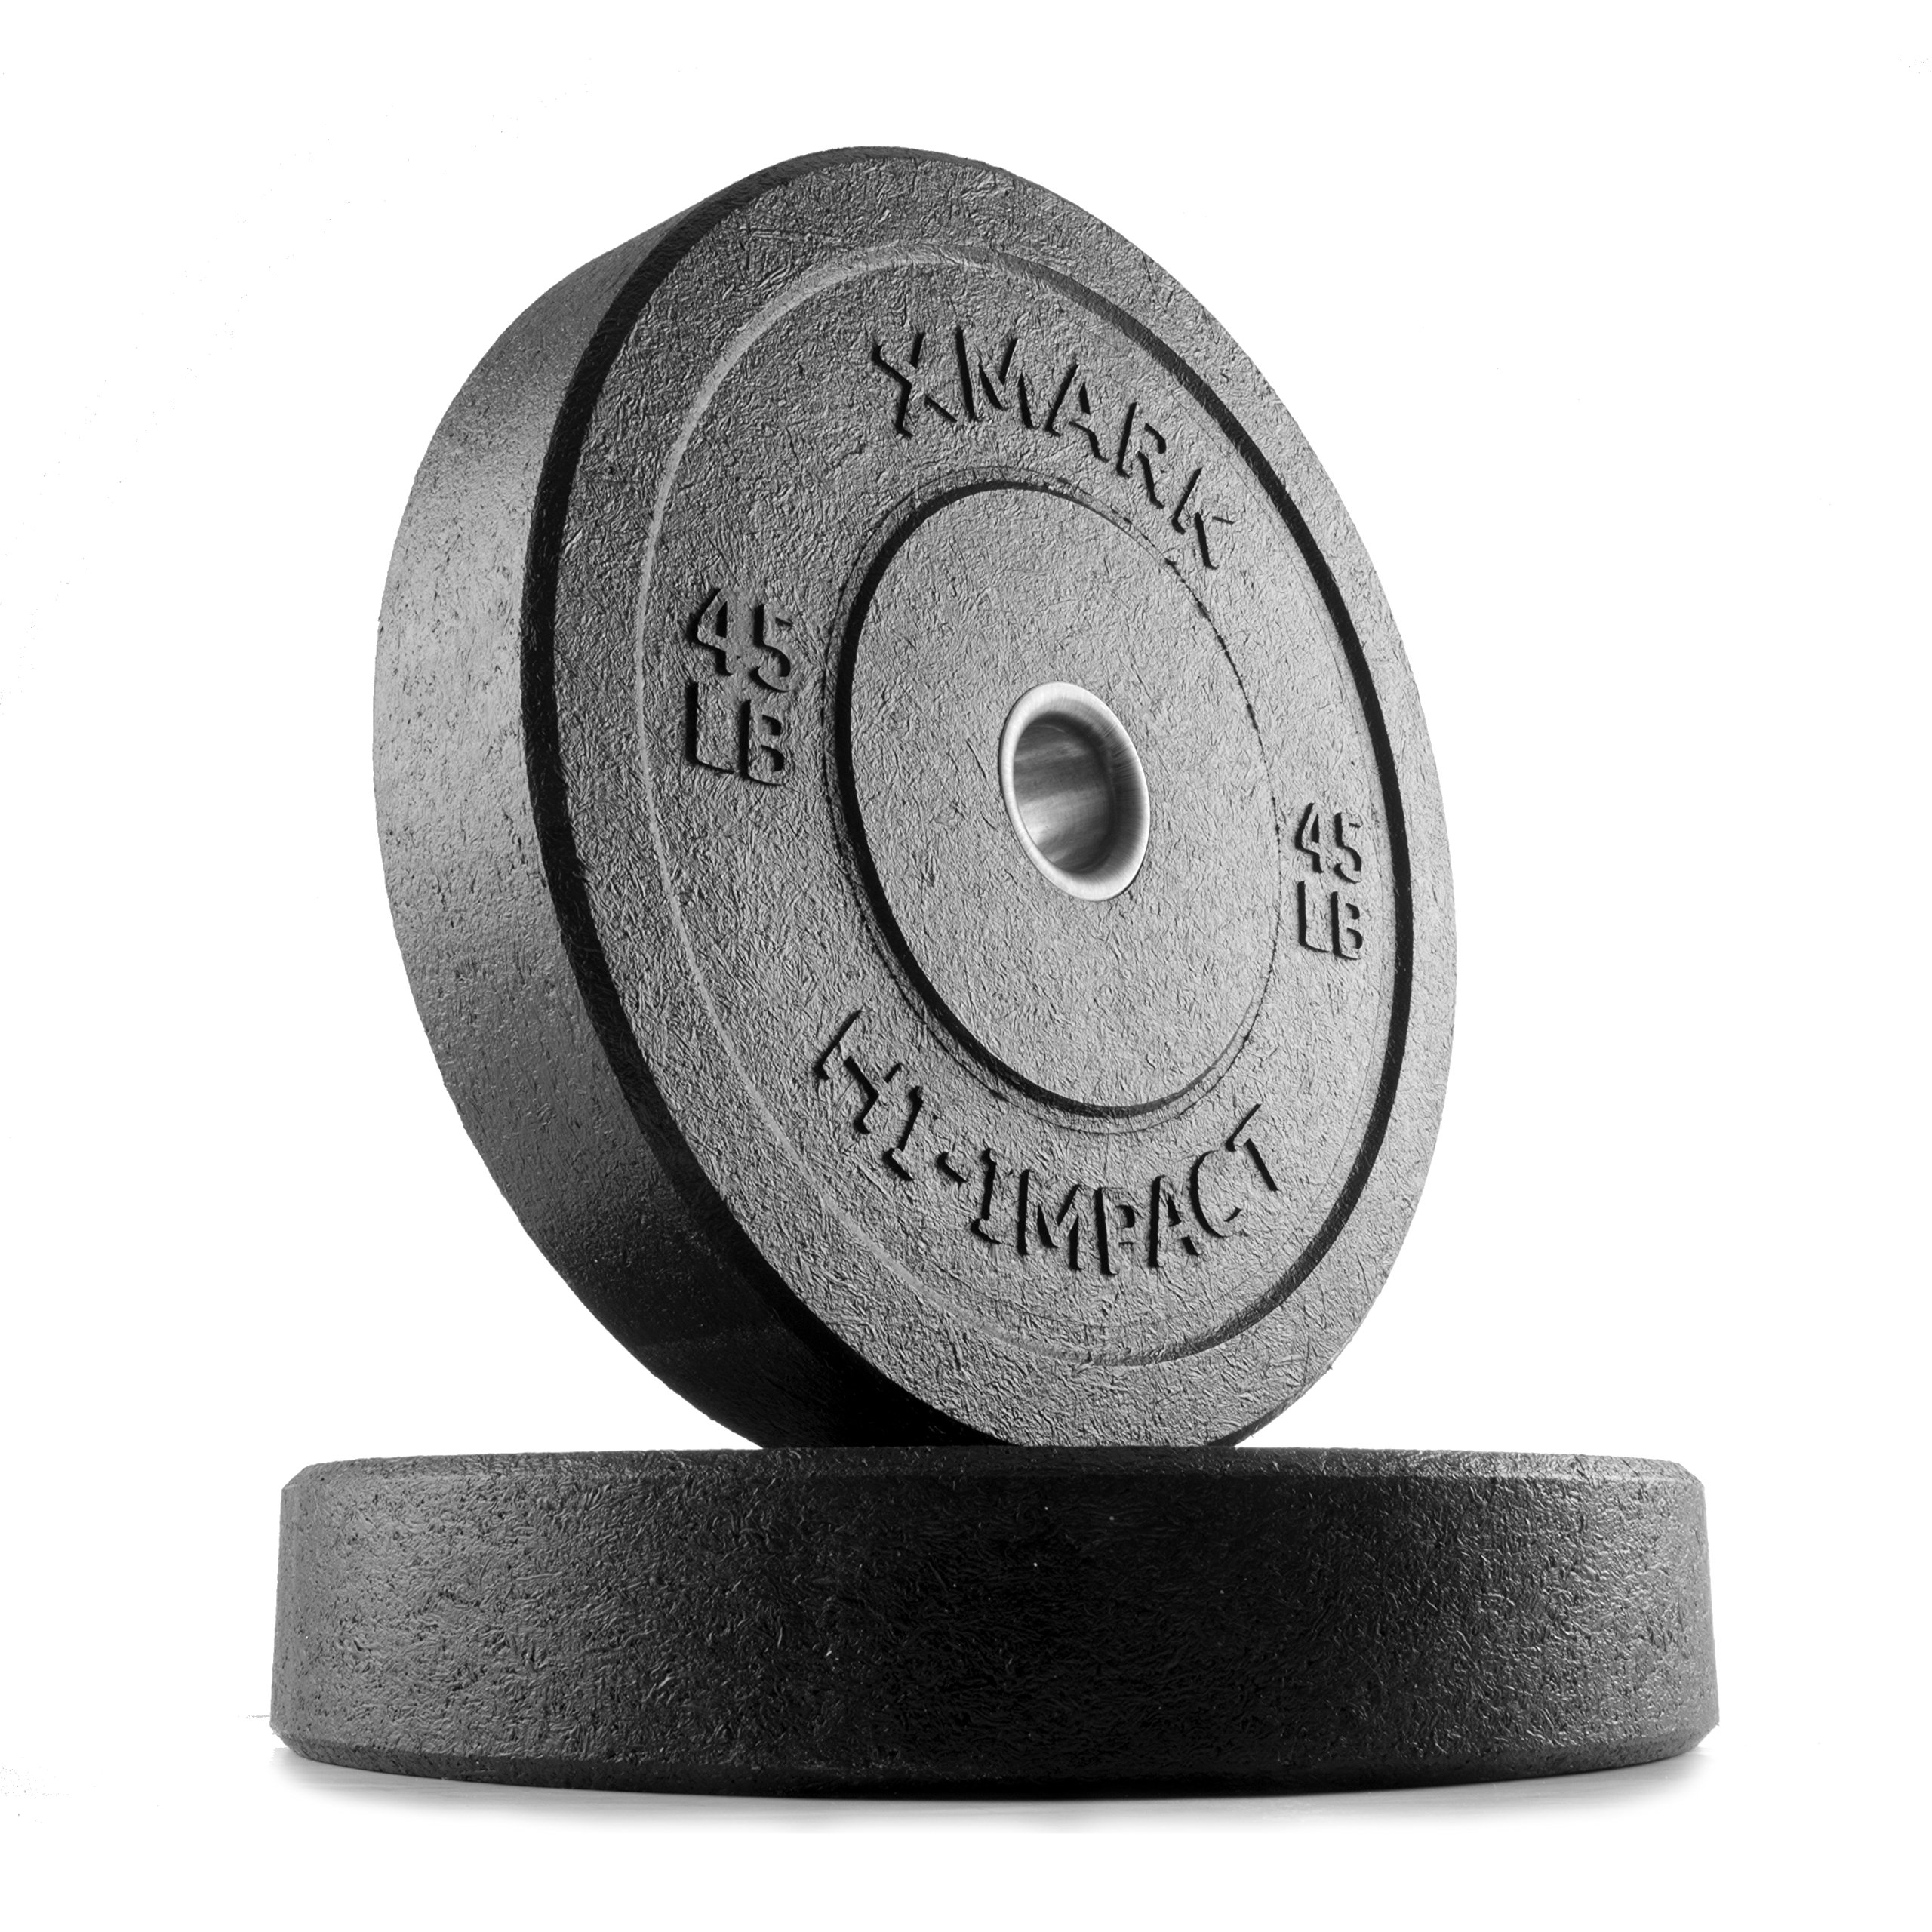 XMark 45 lb Pair Go Green Bumpers, Three-Year Warranty, Hi-Impact Commercial Olympic Bumper Weight Plates, XM-3391 by XMark Fitness (Image #1)